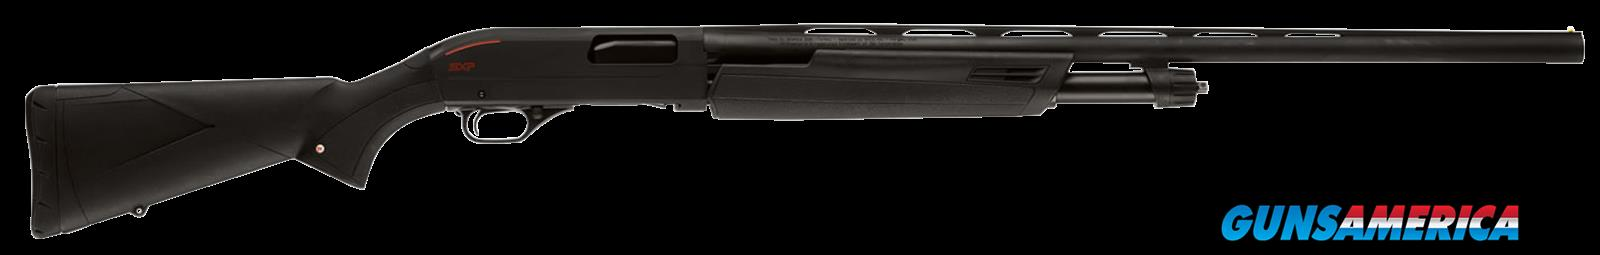 "Winchester Guns 512251691 SXP  20 Gauge 26"" 3"" Blk Synthetic Stk Blk Rcvr  Guns > Shotguns > Winchester Shotguns - Modern > Pump Action > Defense/Tactical"